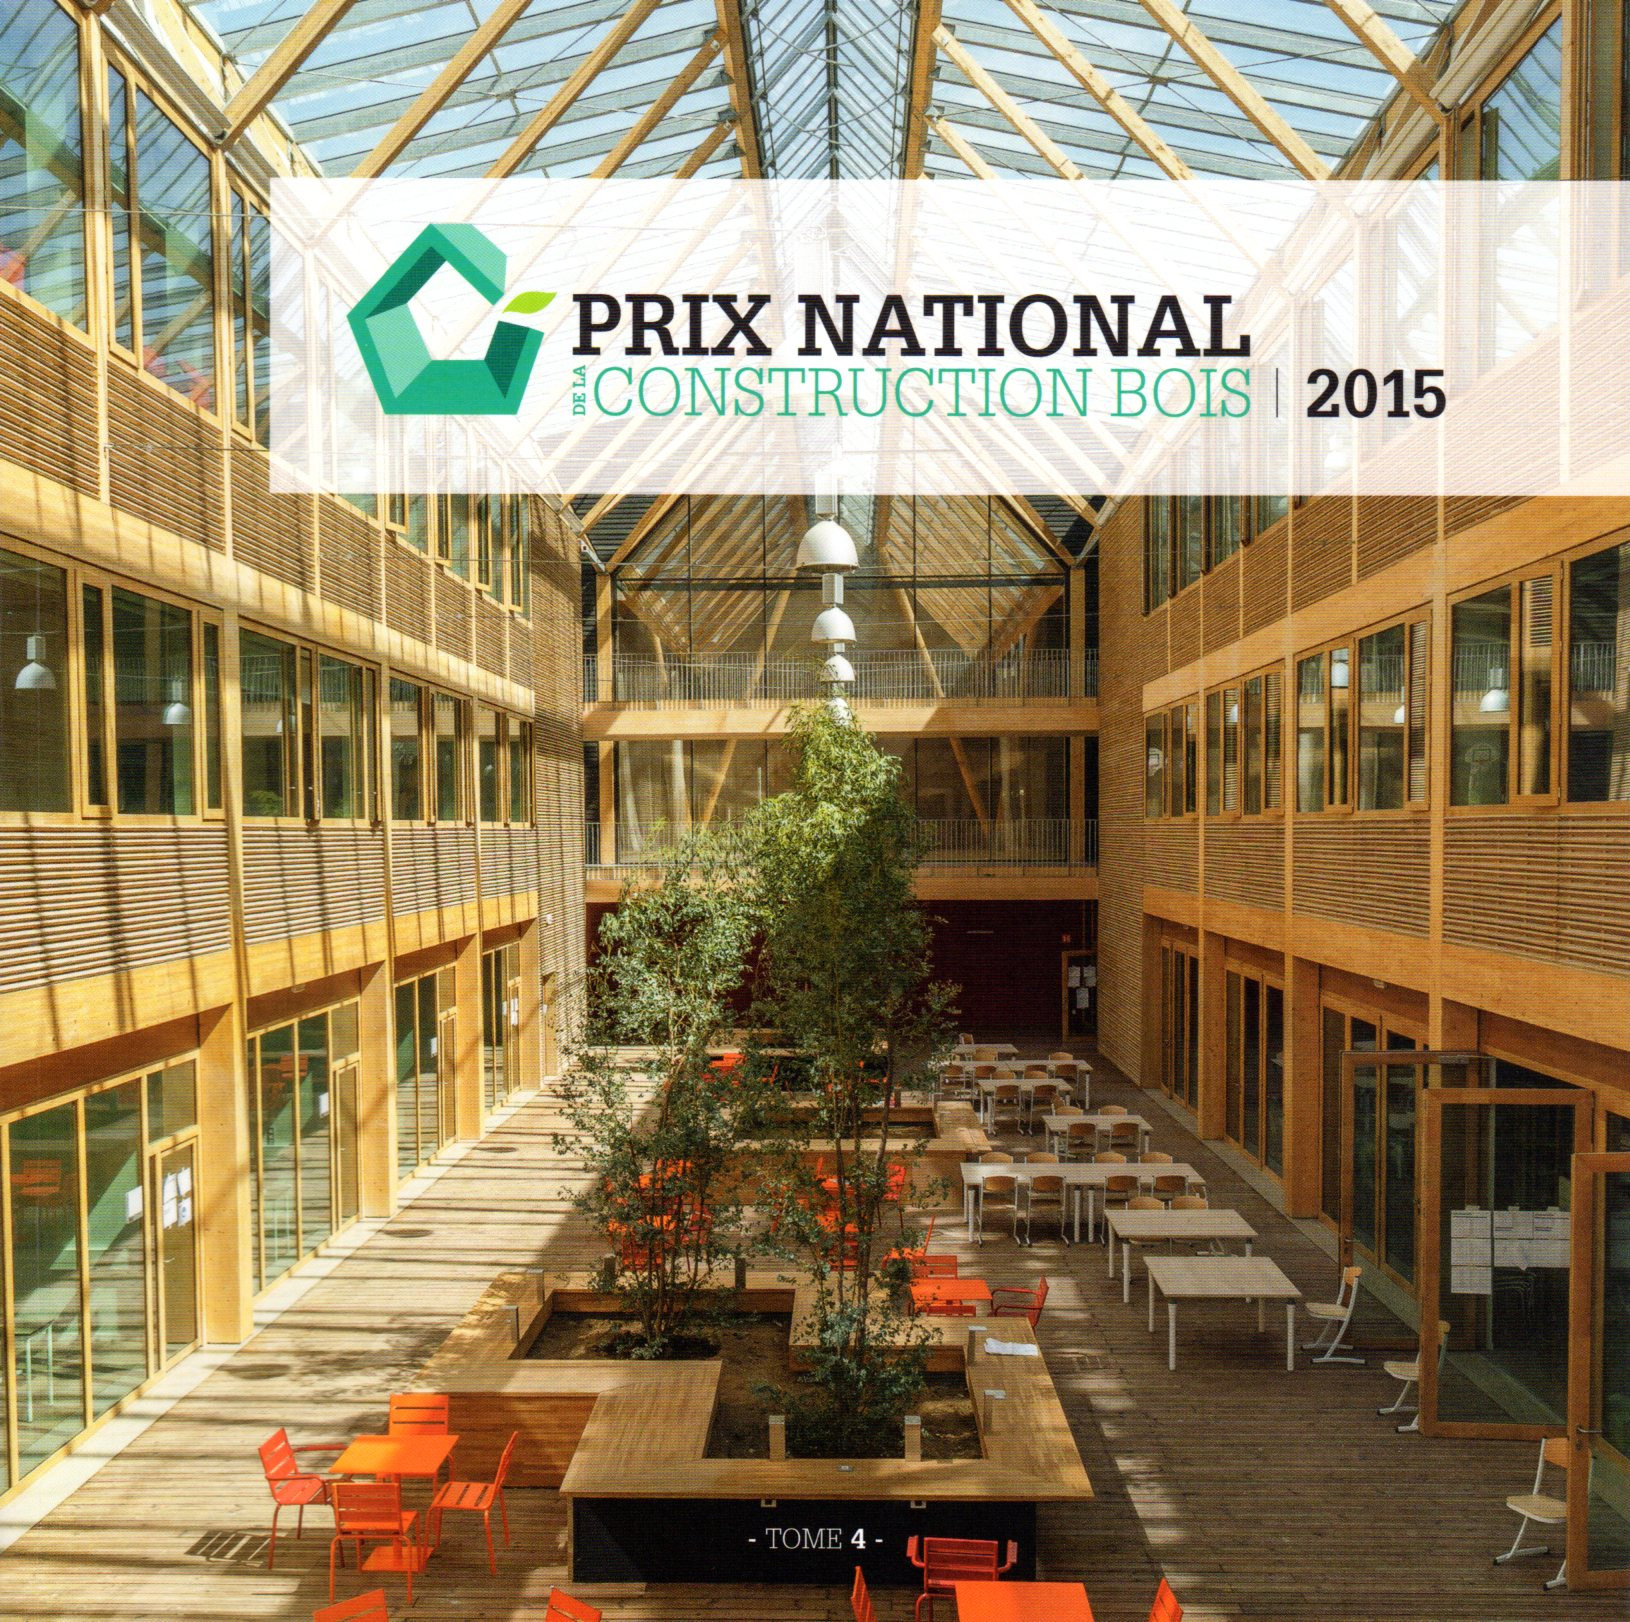 Mizu r compens au prix national de la construction bois for Prix construction m2 2015